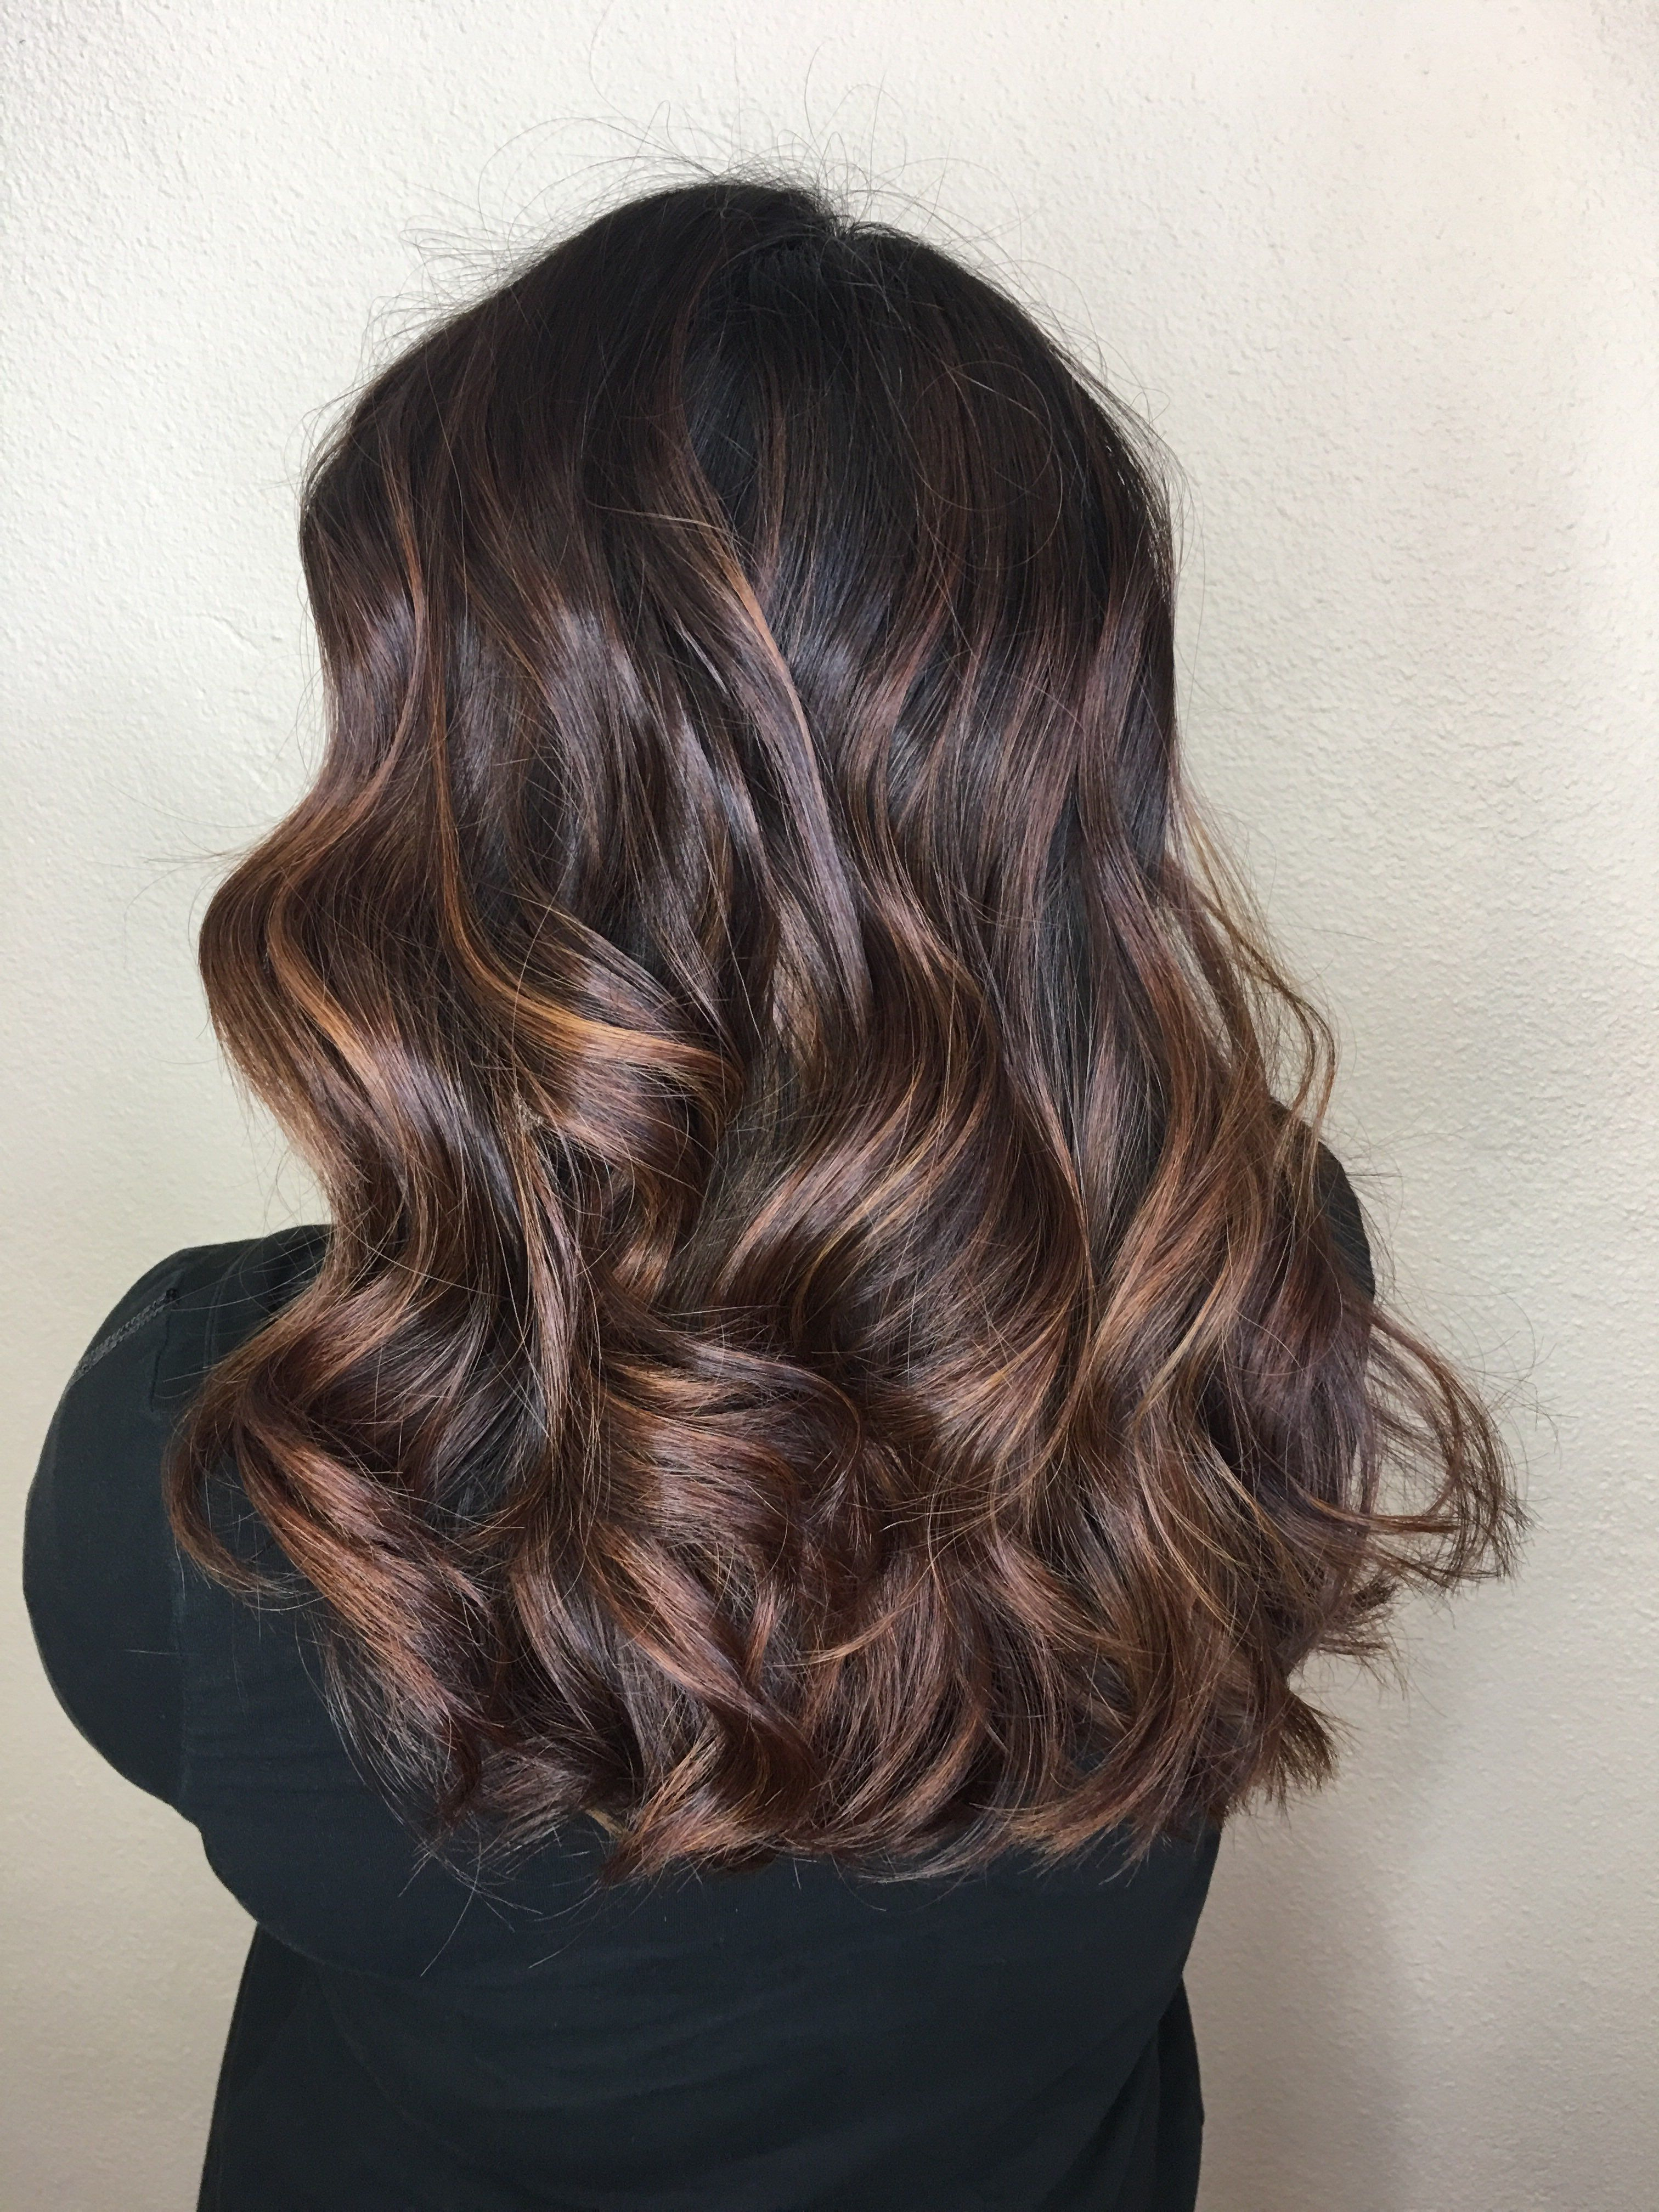 Beautiful Copper Blonde Pieces Rich Root Dark Brown Chocolate Color Medium Length Hair Soft Waves Rich Brown Hair Copper Blonde Medium Length Hair Styles